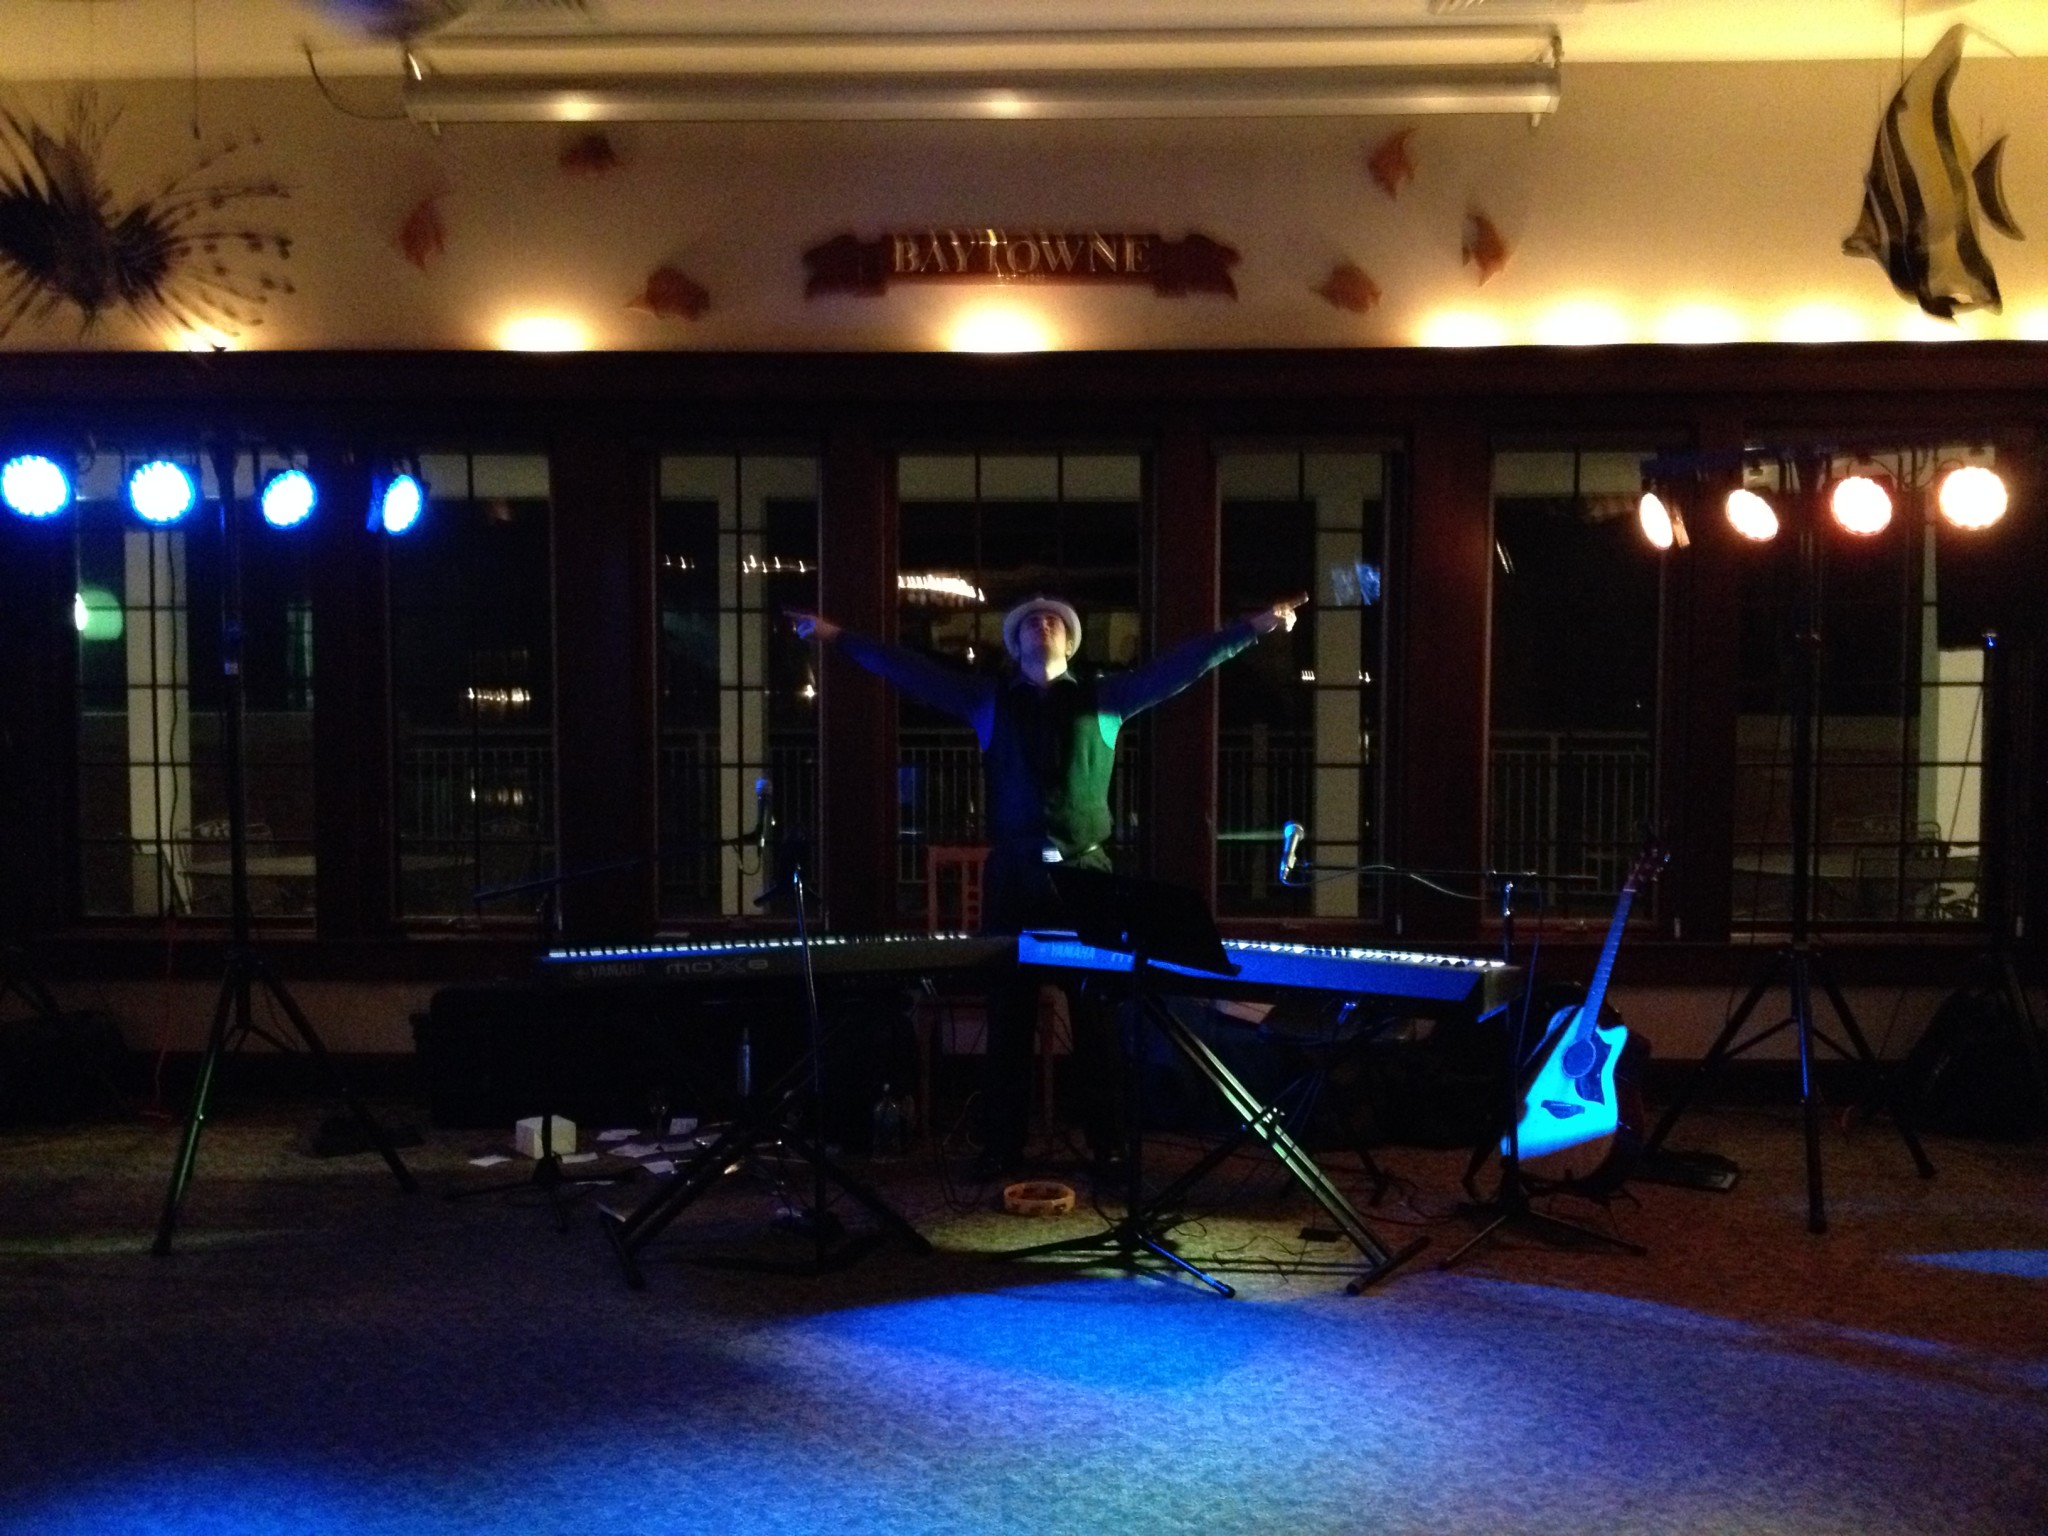 Holiday Dueling Pianos Are Approaching Quickly